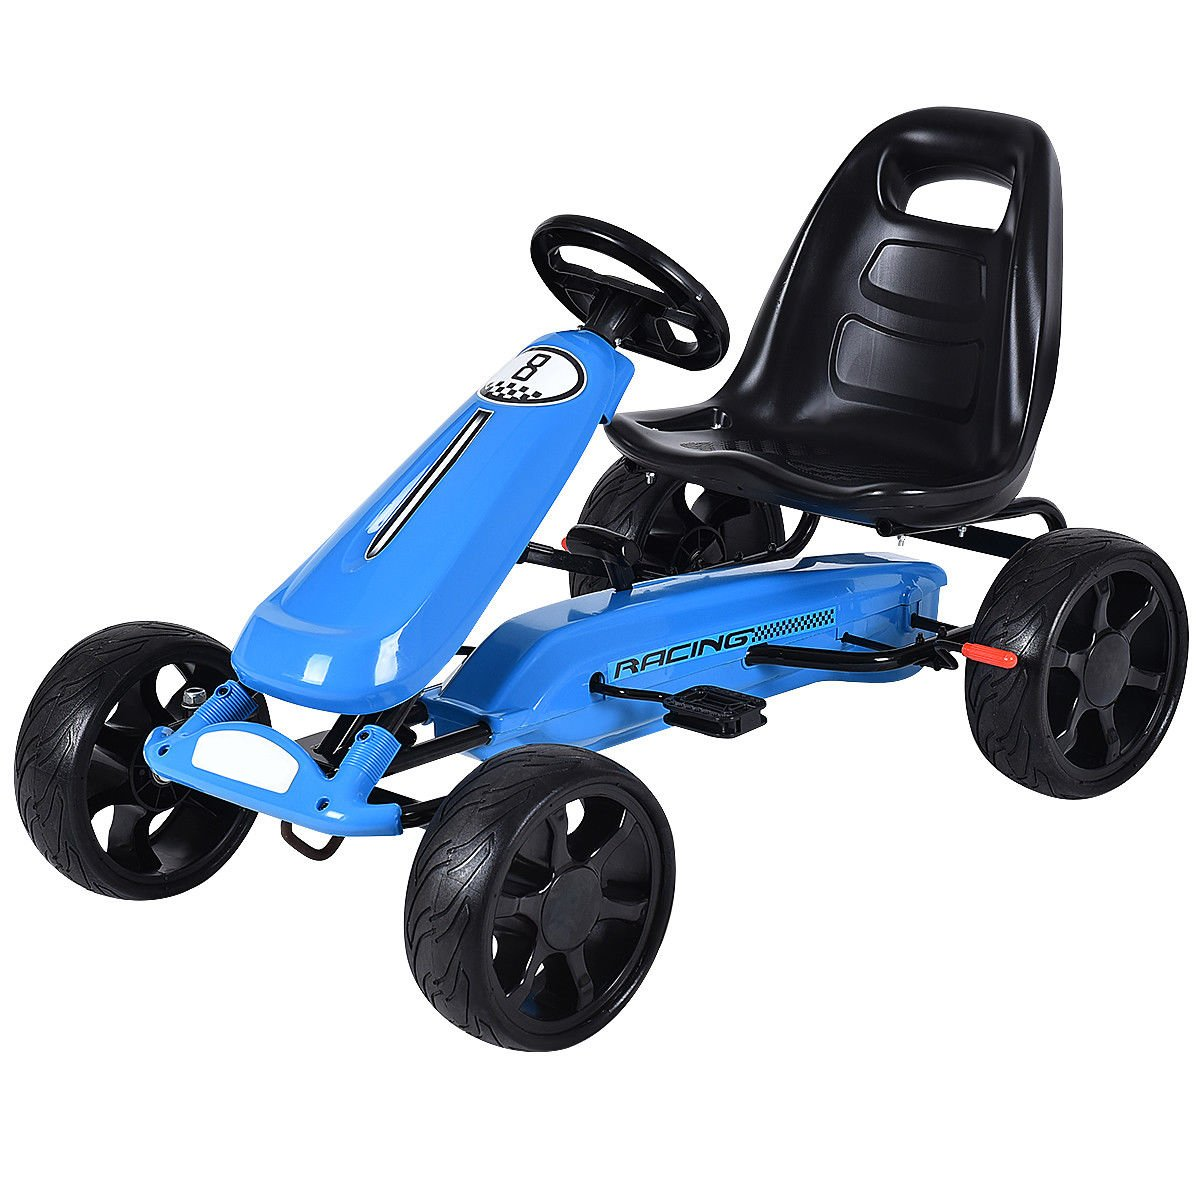 Costzon Go Kart, 4 Wheel Powered Racer Outdoor Toy, Kids Ride On Pedal Car (Blue)